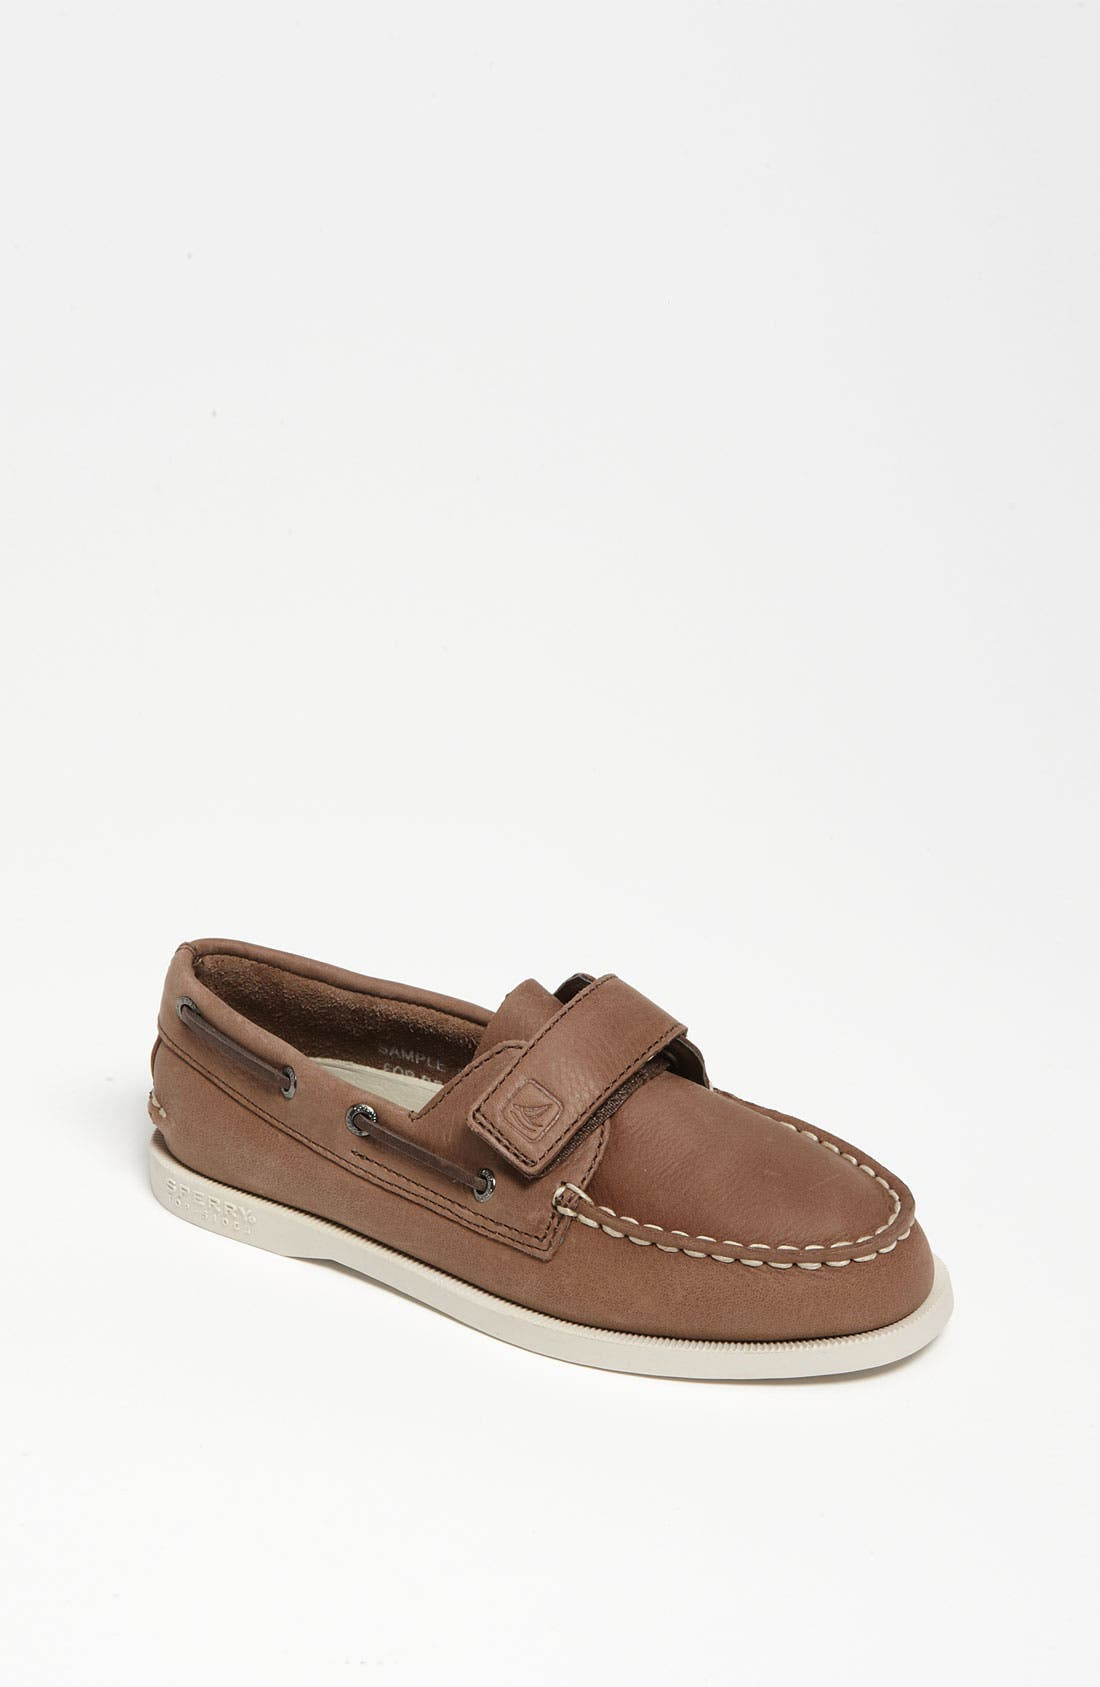 Sperry Top-Sider<sup>®</sup> Kids 'Authentic Original' Boat Shoe,                             Main thumbnail 1, color,                             BROWN